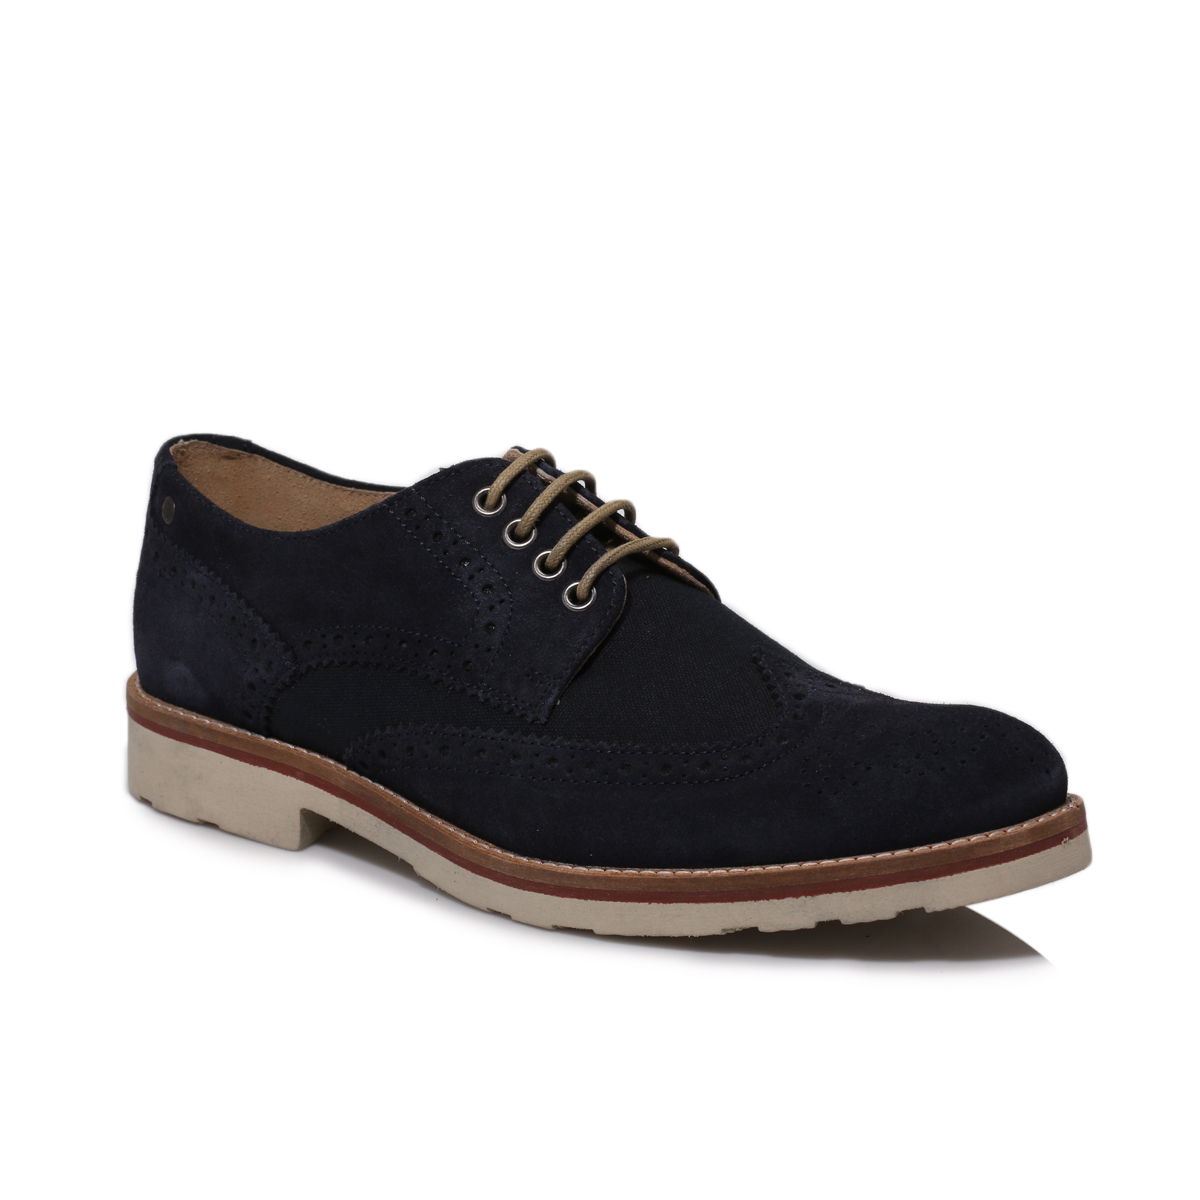 Smart Brown Suede Shoes Uk